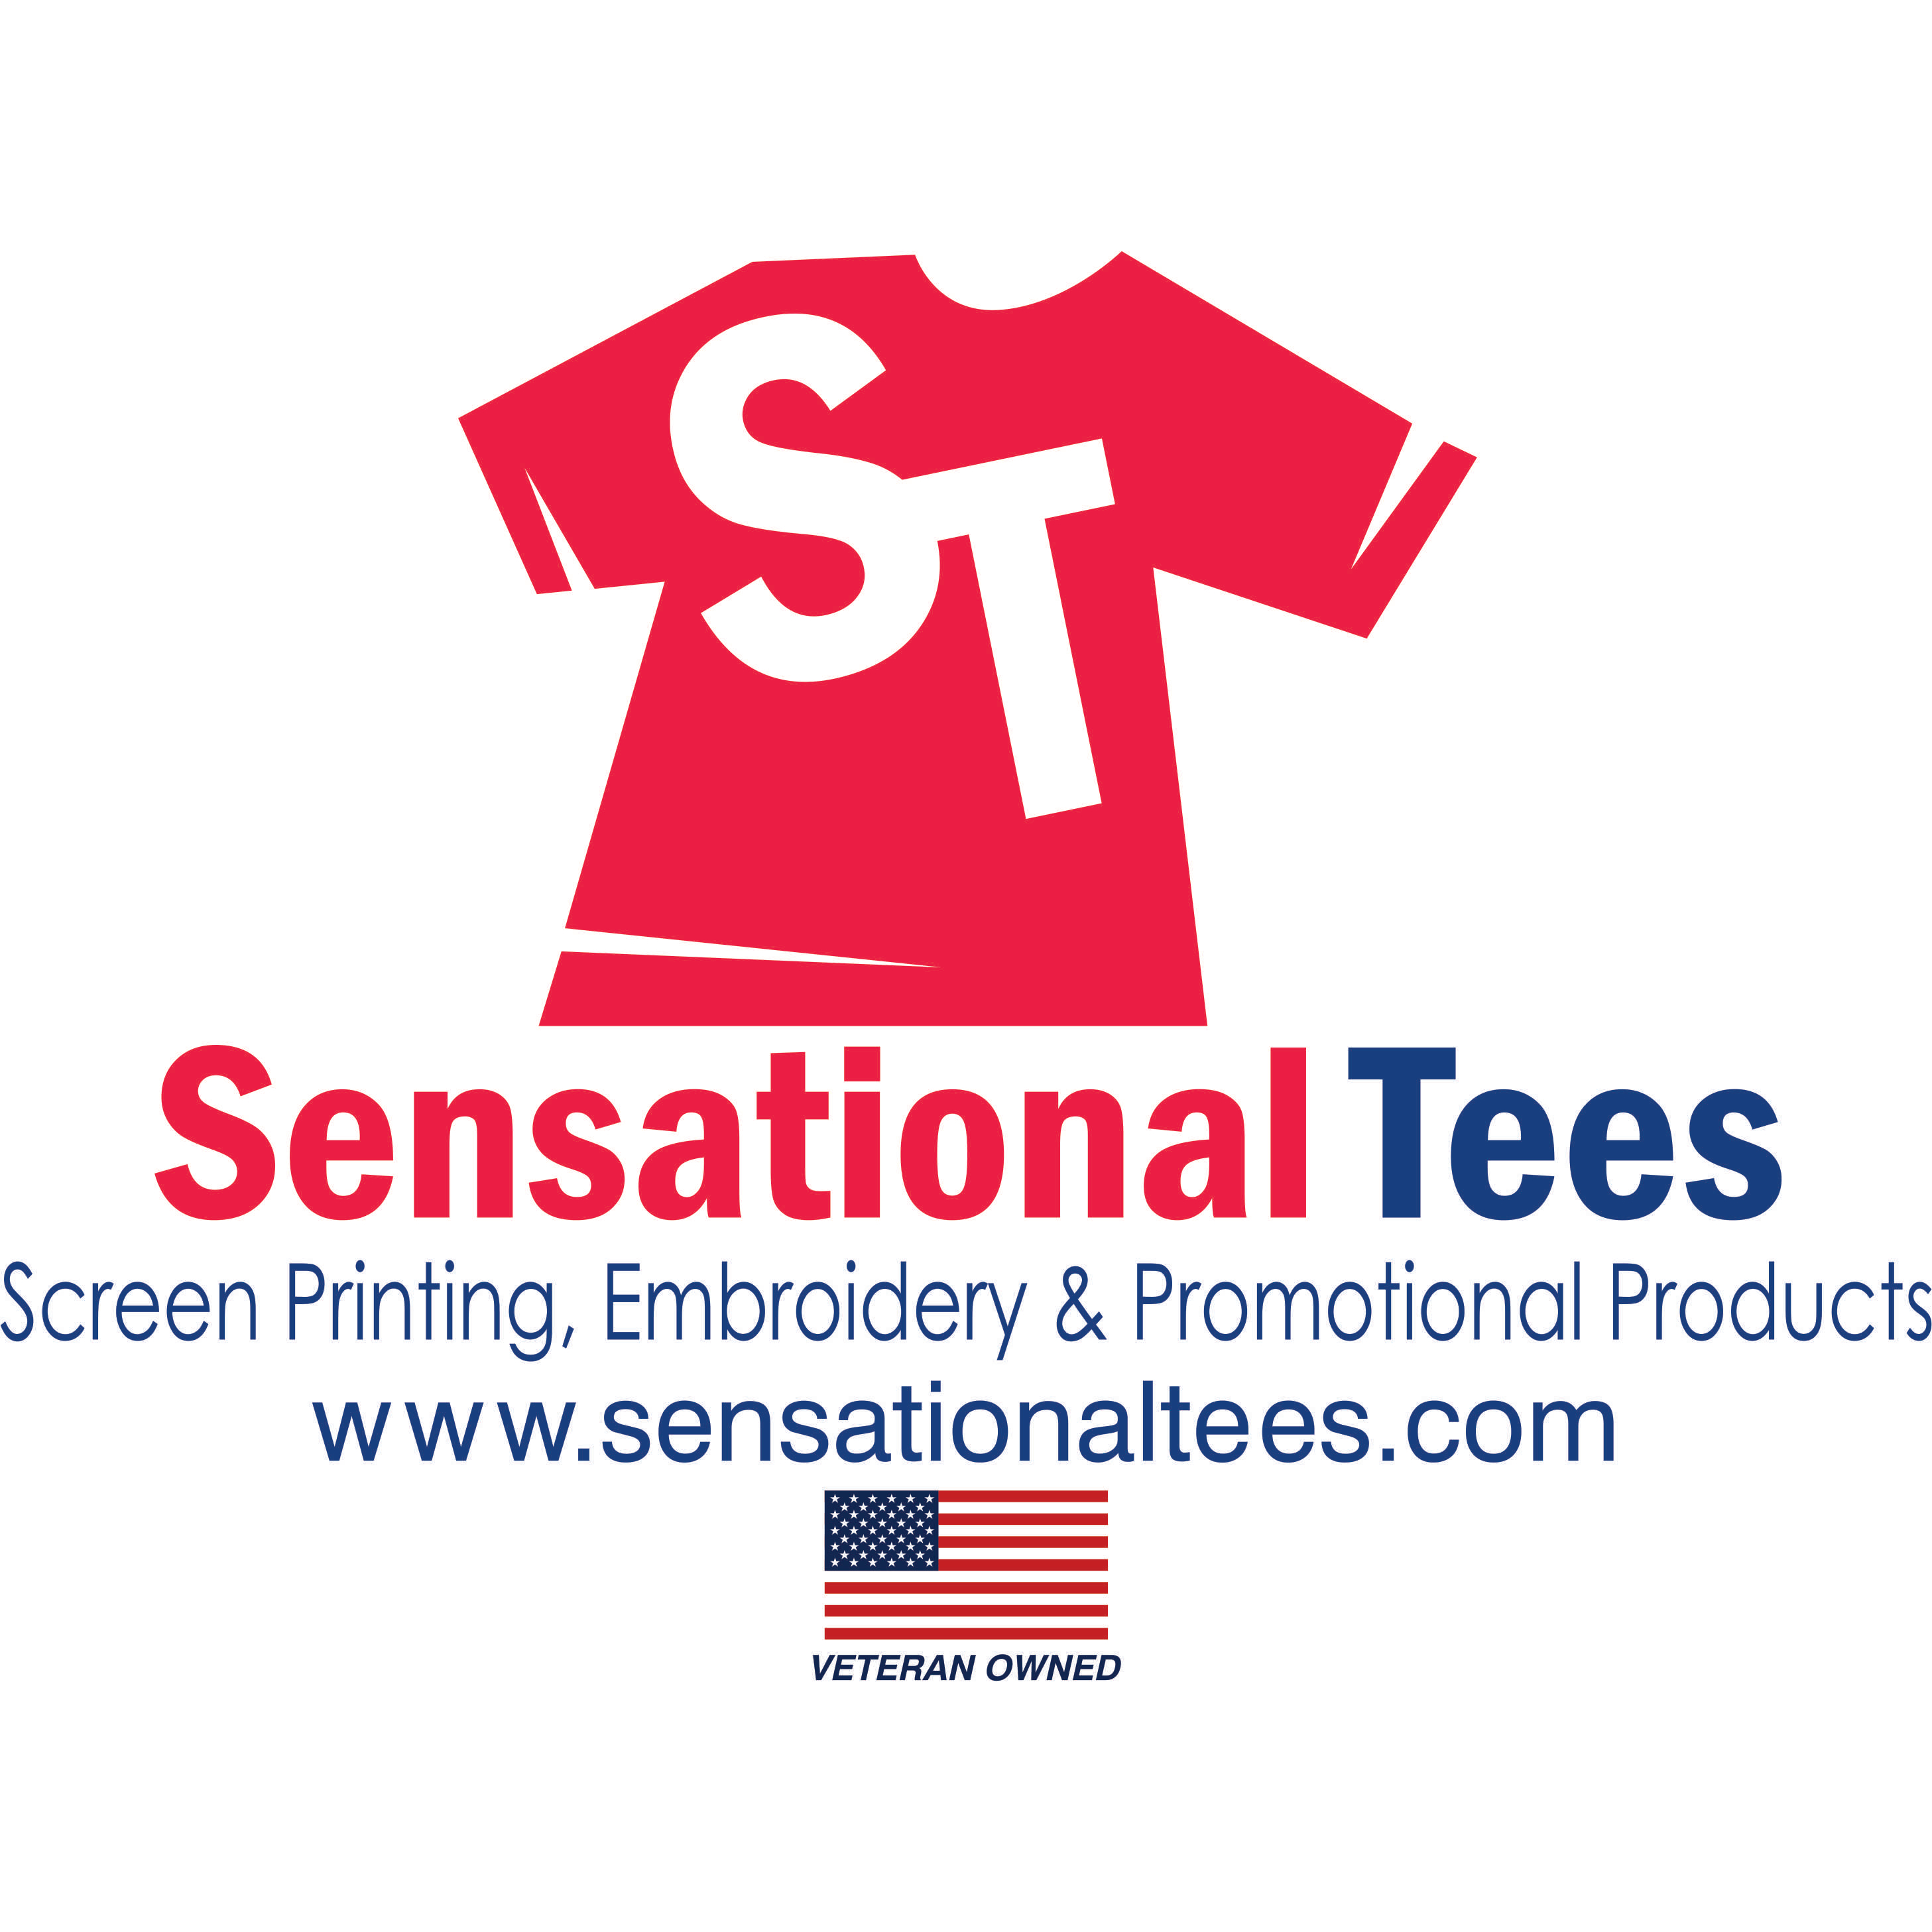 image of the Sensational Tees Screen Printing, Embroidery & Promotional Products